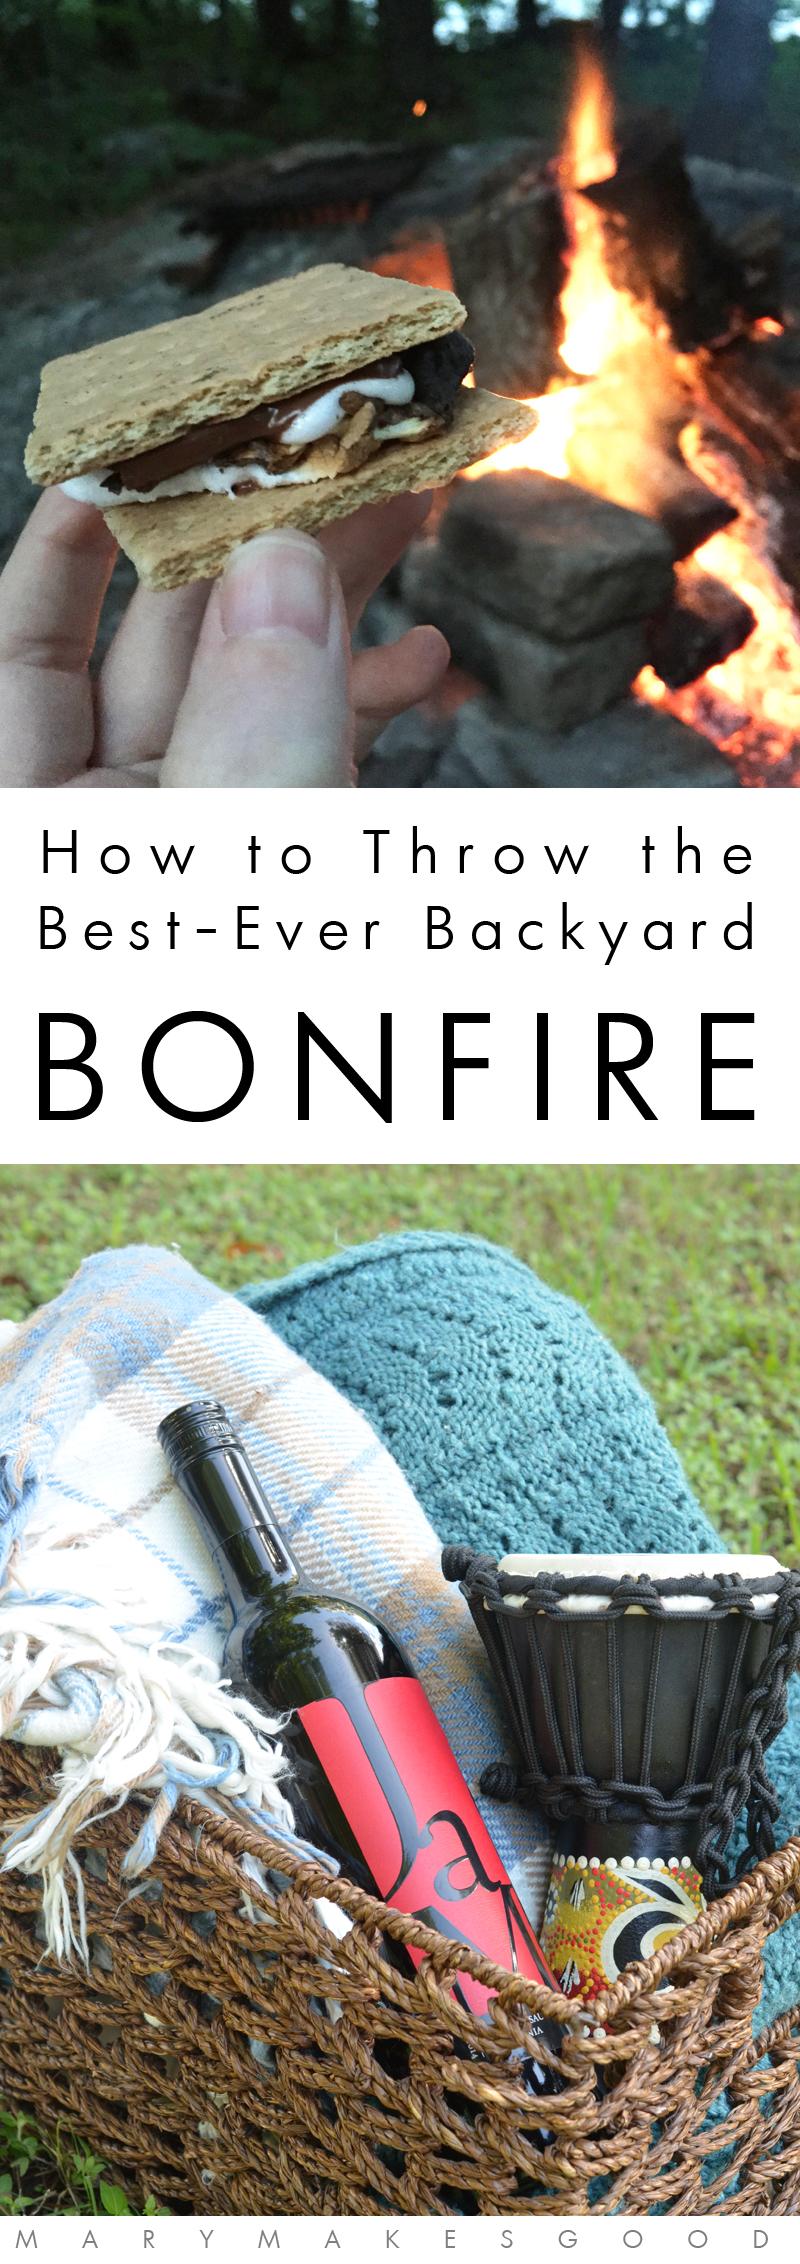 Bonfire Party Ideas